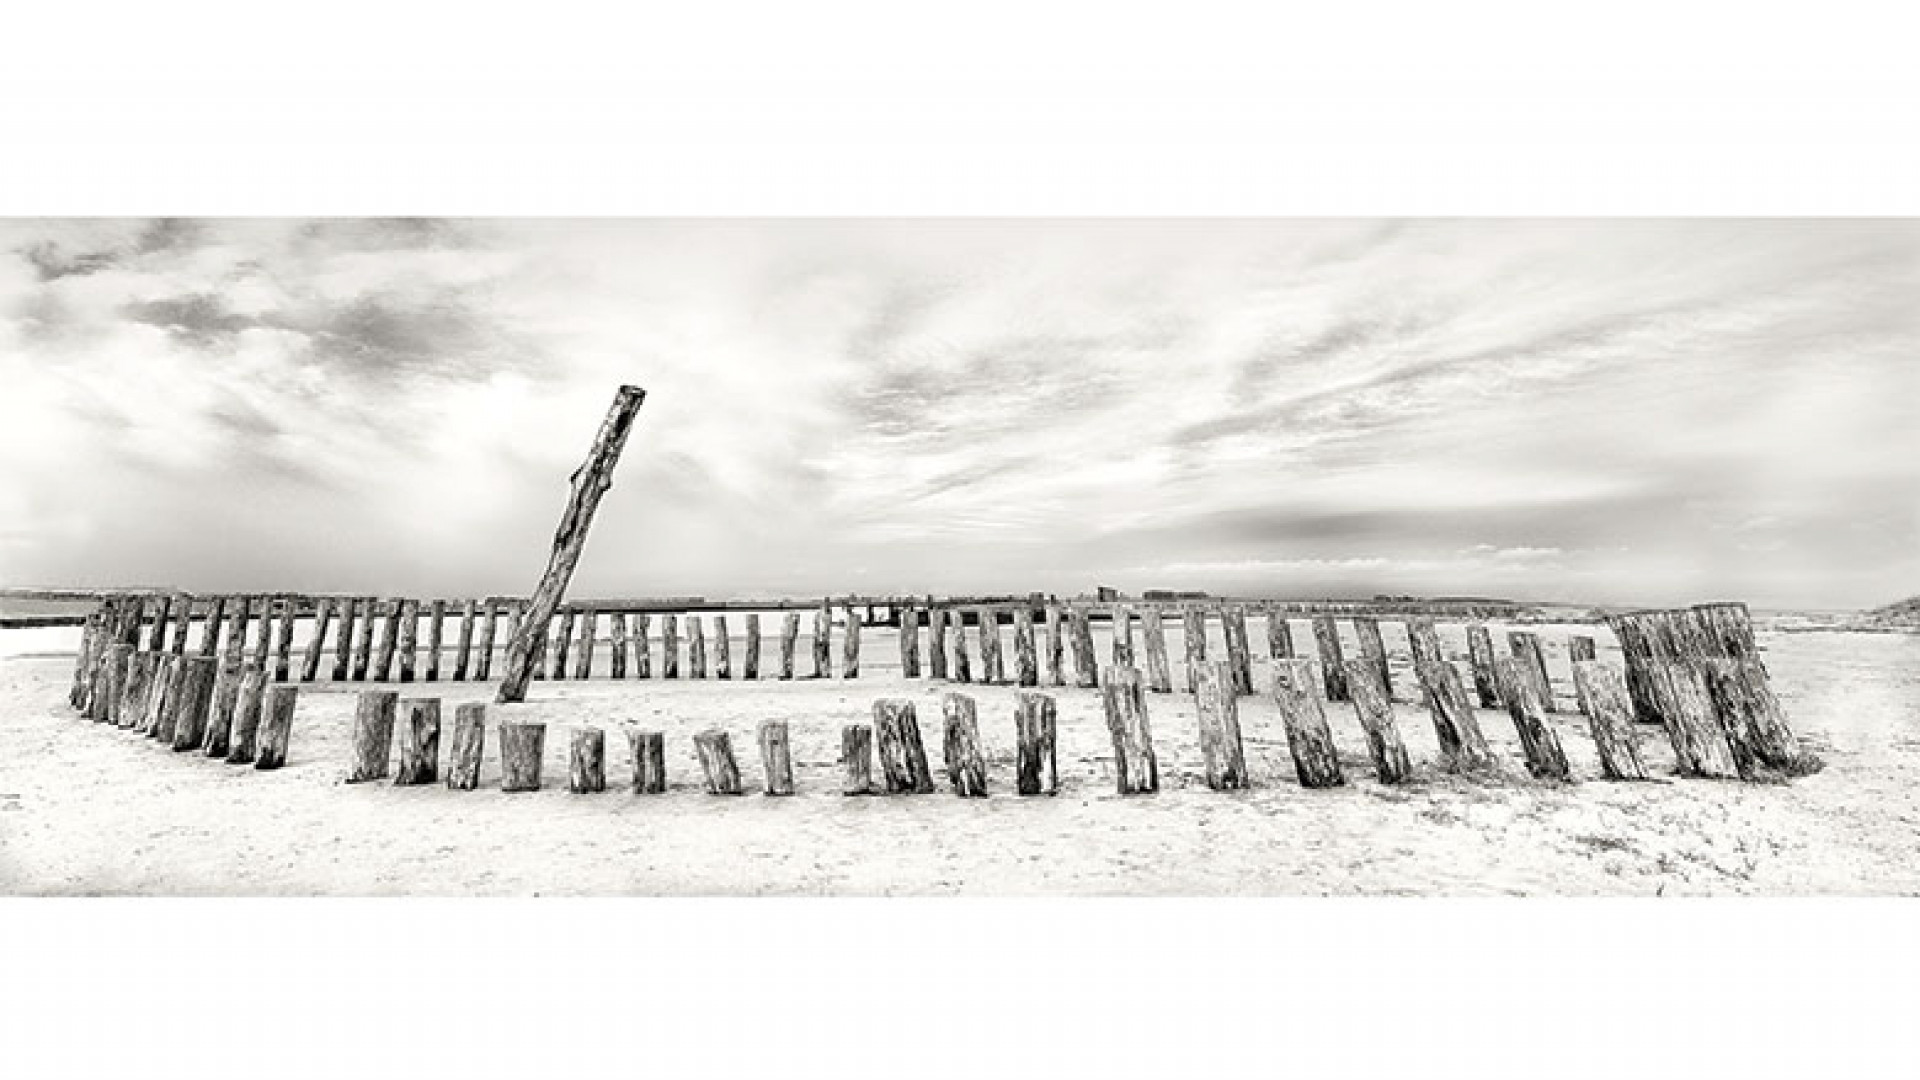 Sinan_Dinis,_Portugal,_Entry,_Open_Panoramic,_2014_Sony_World_Photography_Awards.jpg_cmyk